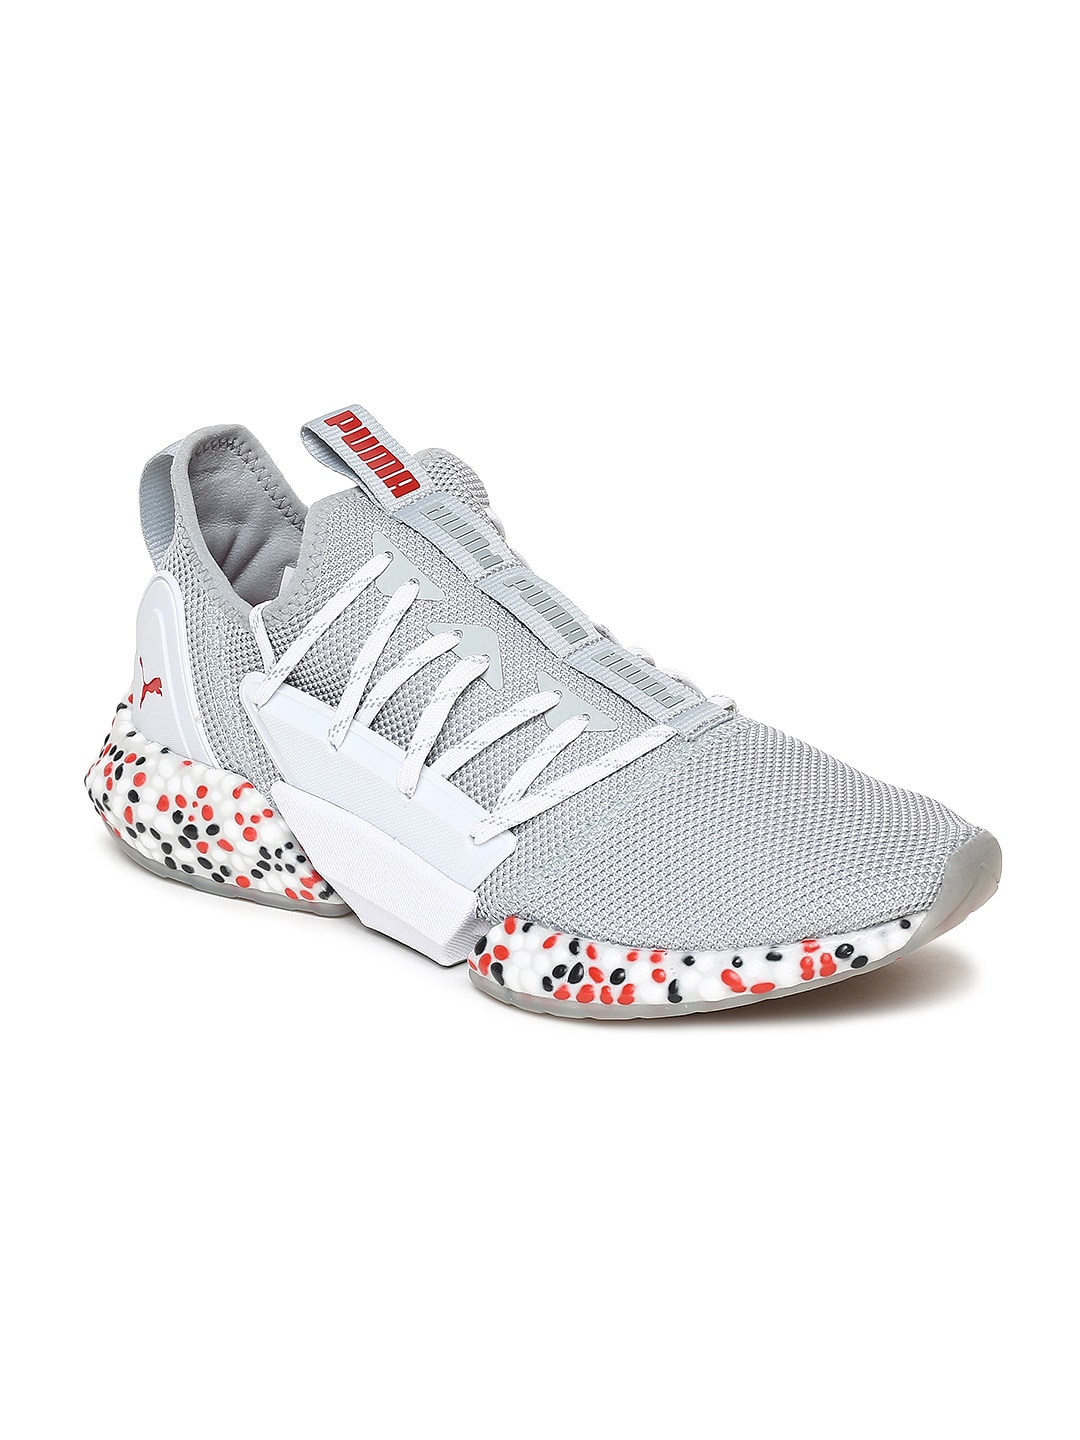 8852f6eeaa3 Puma Shoes - Buy Puma Shoes for Men   Women Online in India